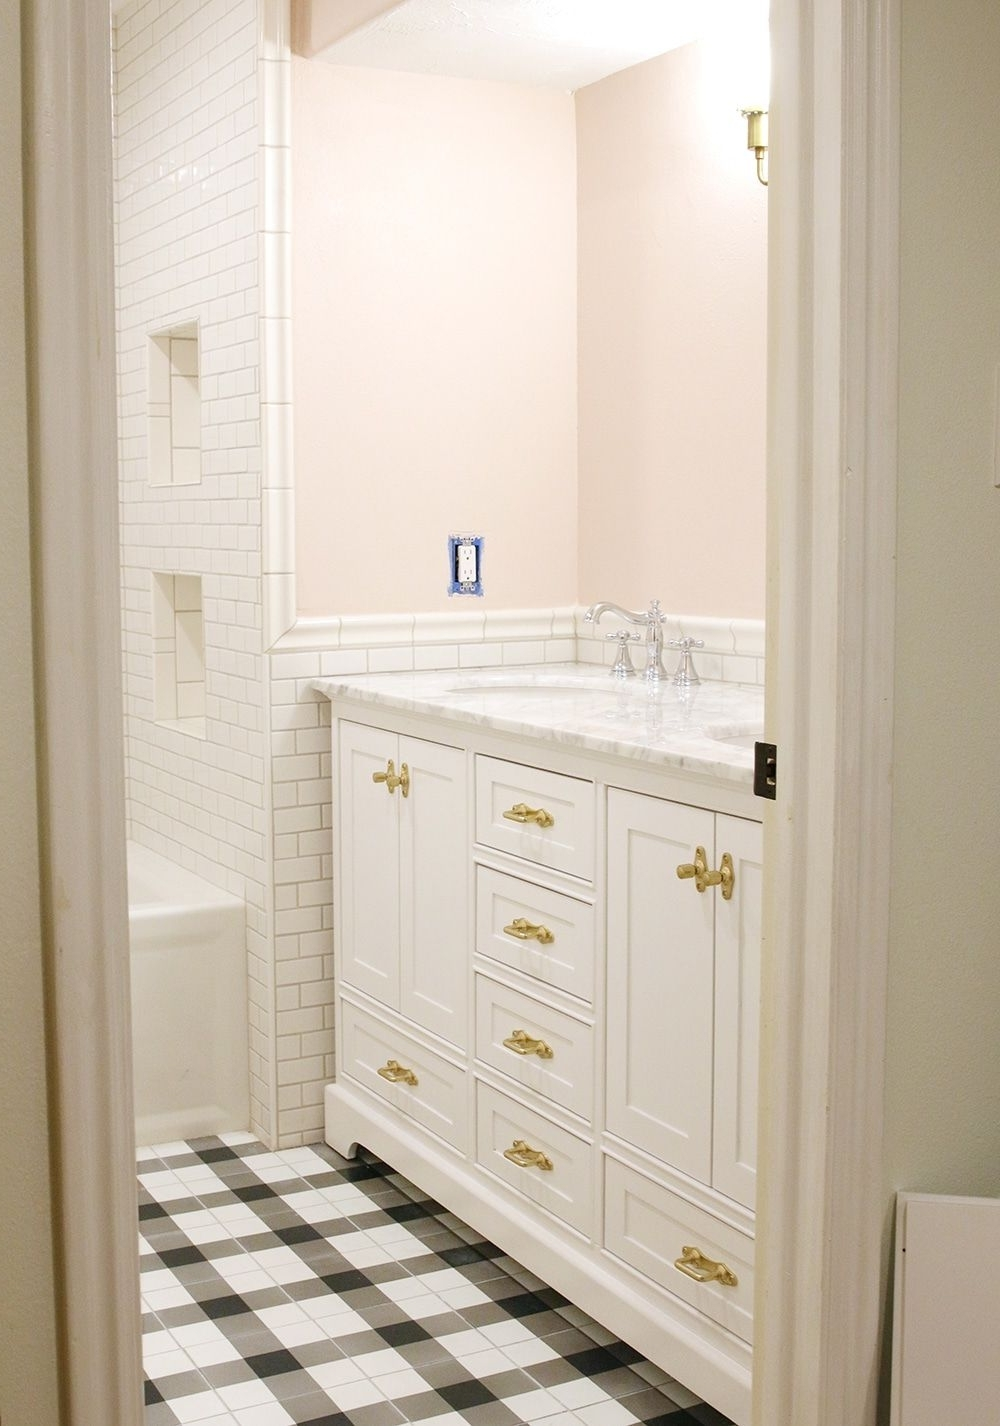 This Post Is Sponsoredhandy Paint Products. I Didn'T 20+ Small Windowless Bathroom Decorating Ideas